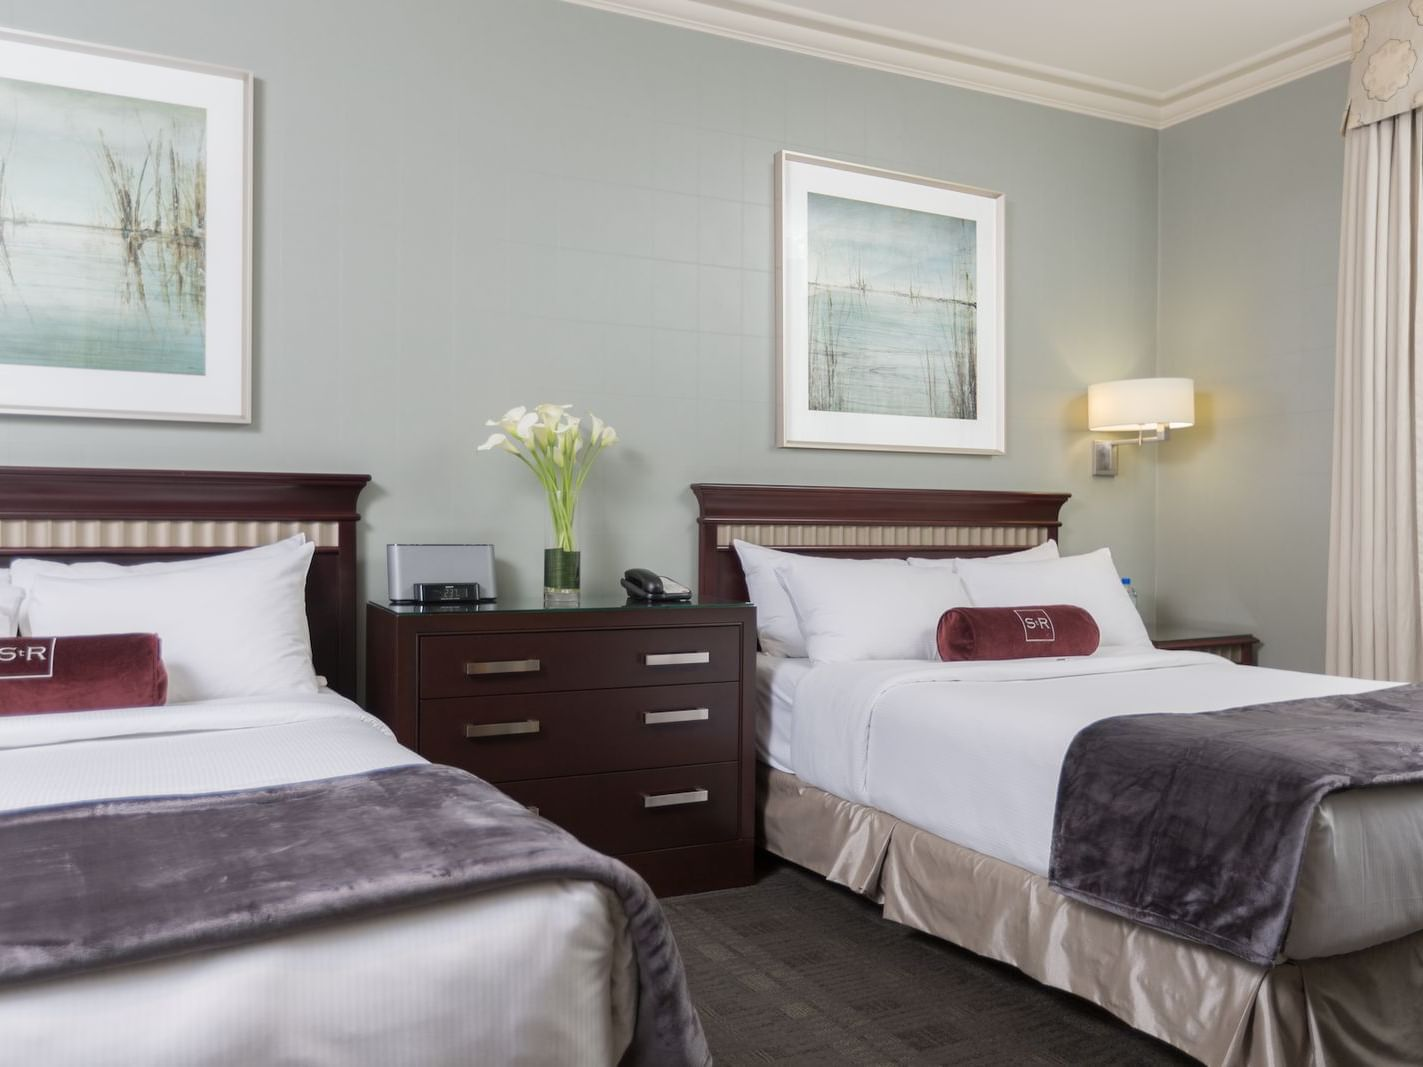 two double beds in hotel room with wall artwork